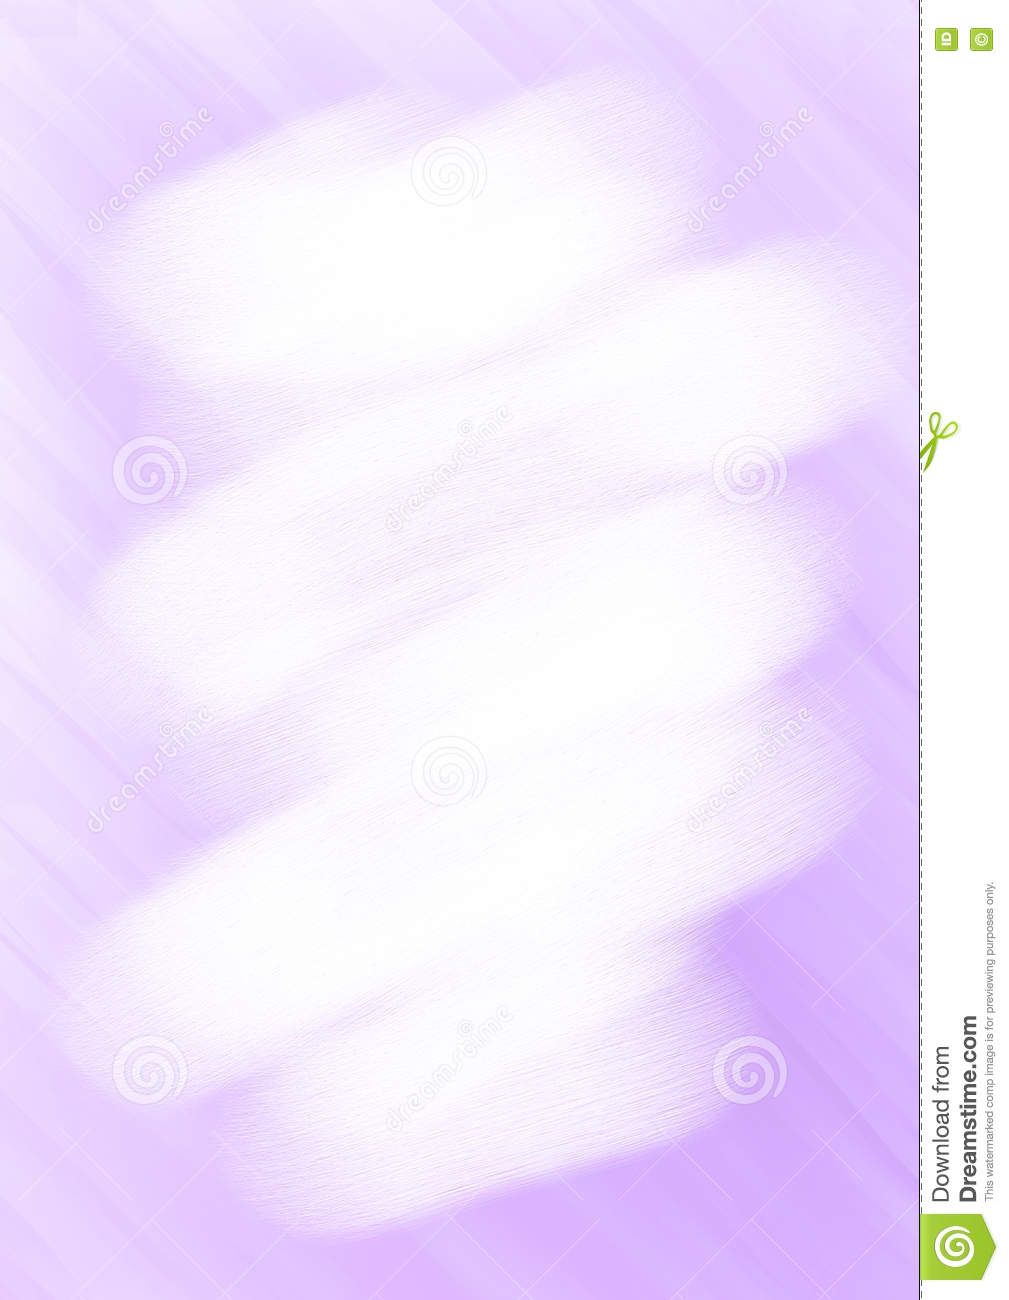 pastel drawn textured background with brushstrokes template for letter or greeting card a4 size format